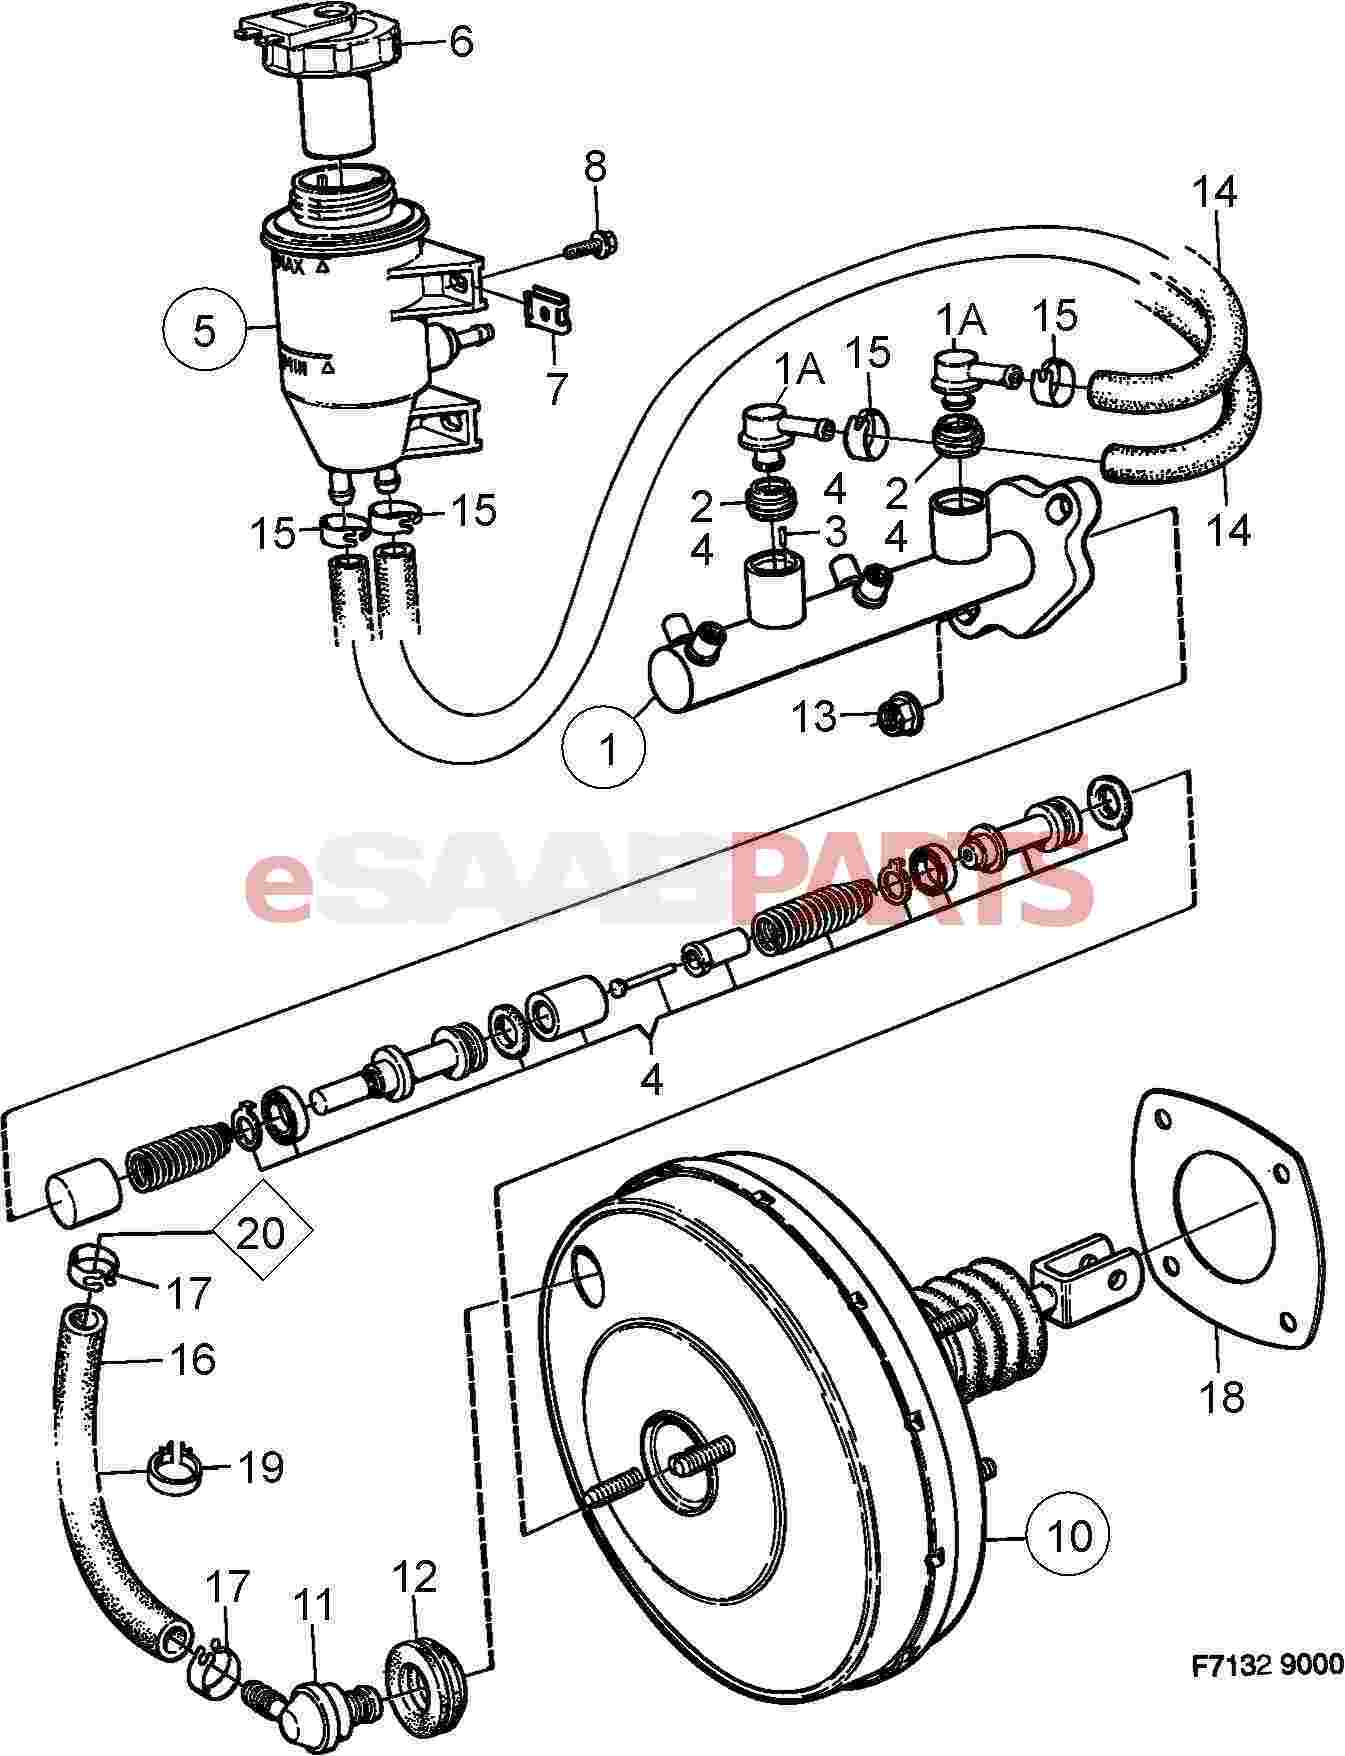 2003 Volkswagen Jetta Air Conditioning Diagram